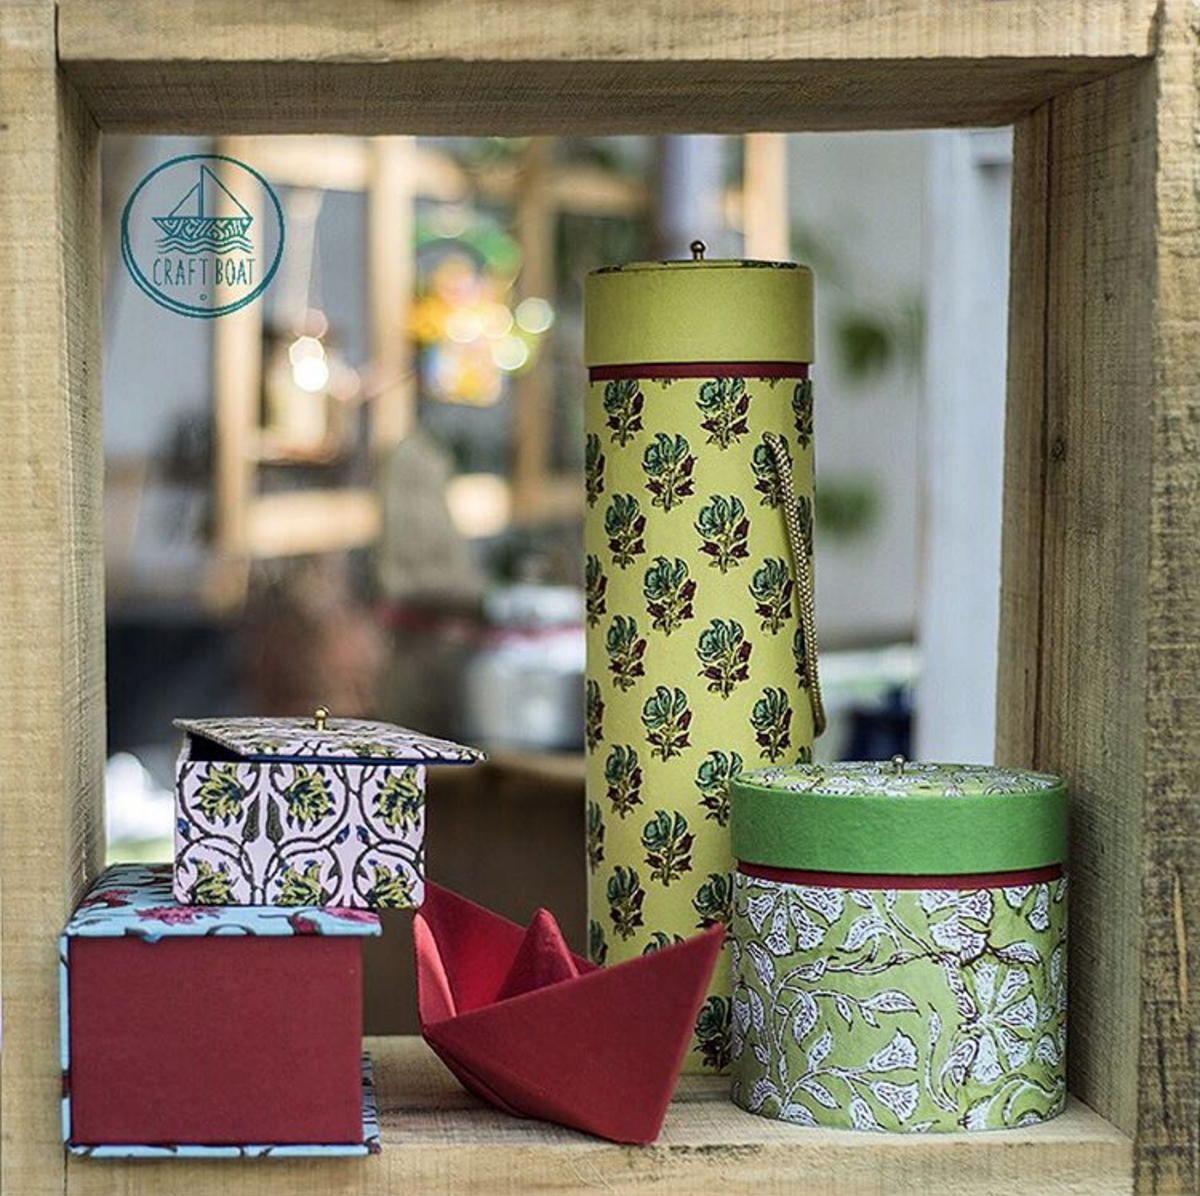 Rang decor interior ideas predominantly indian craft for Craft items from waste